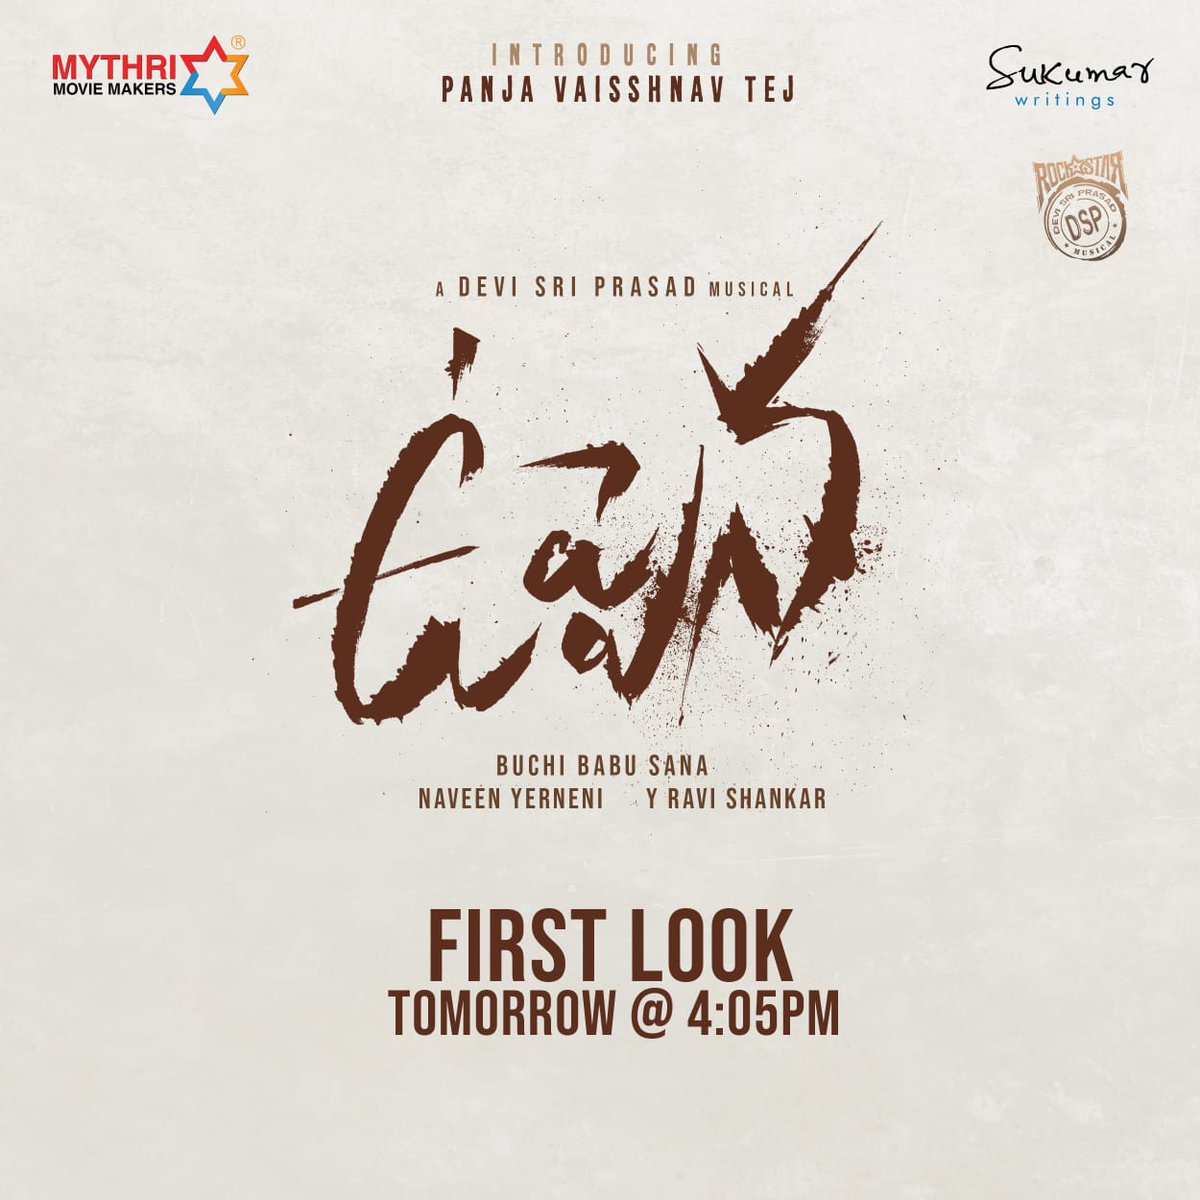 Vaishnav Tej's debut film title confirmed as 'Uppena', First Look tomorrow at 4:05 pm